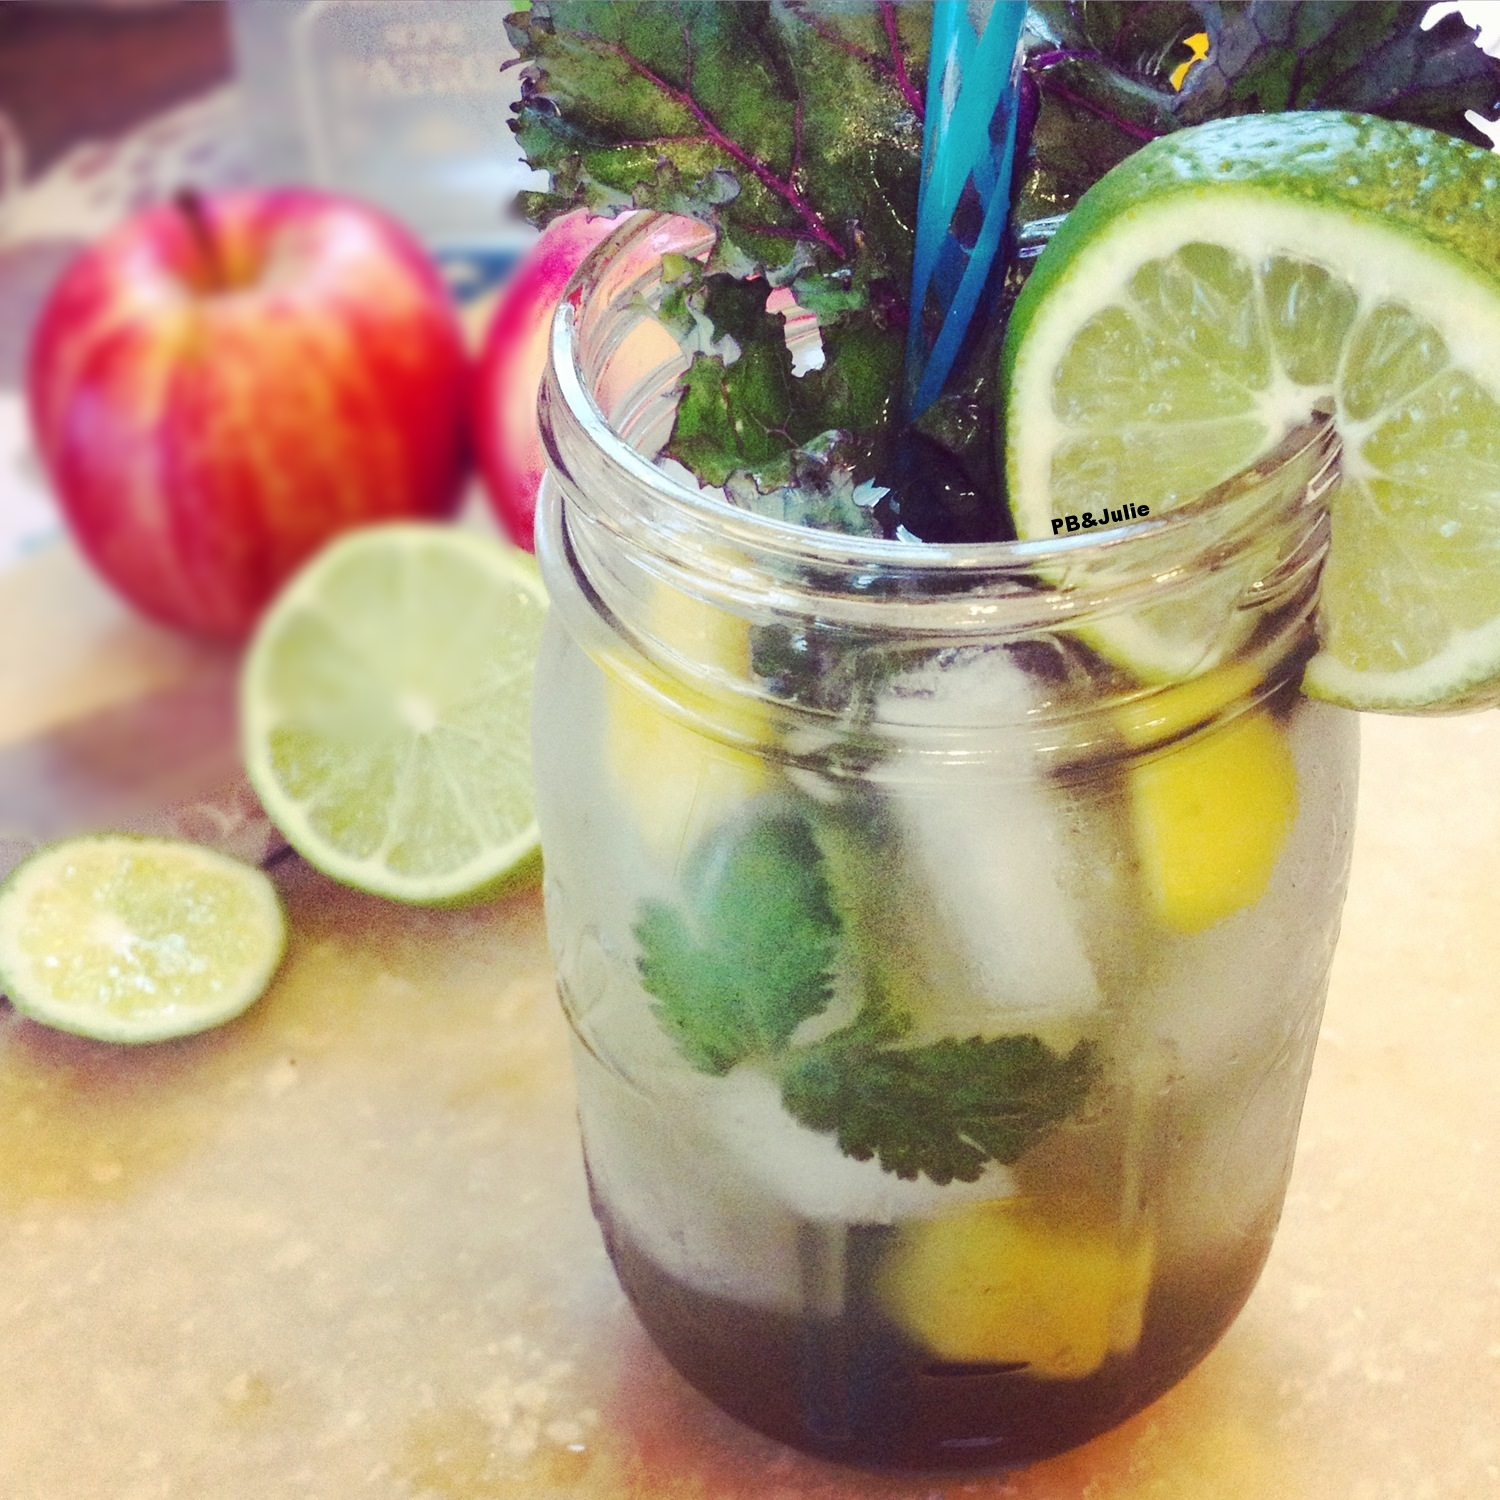 Get your GLOW on with this margarita bursting with super foods nutrition.